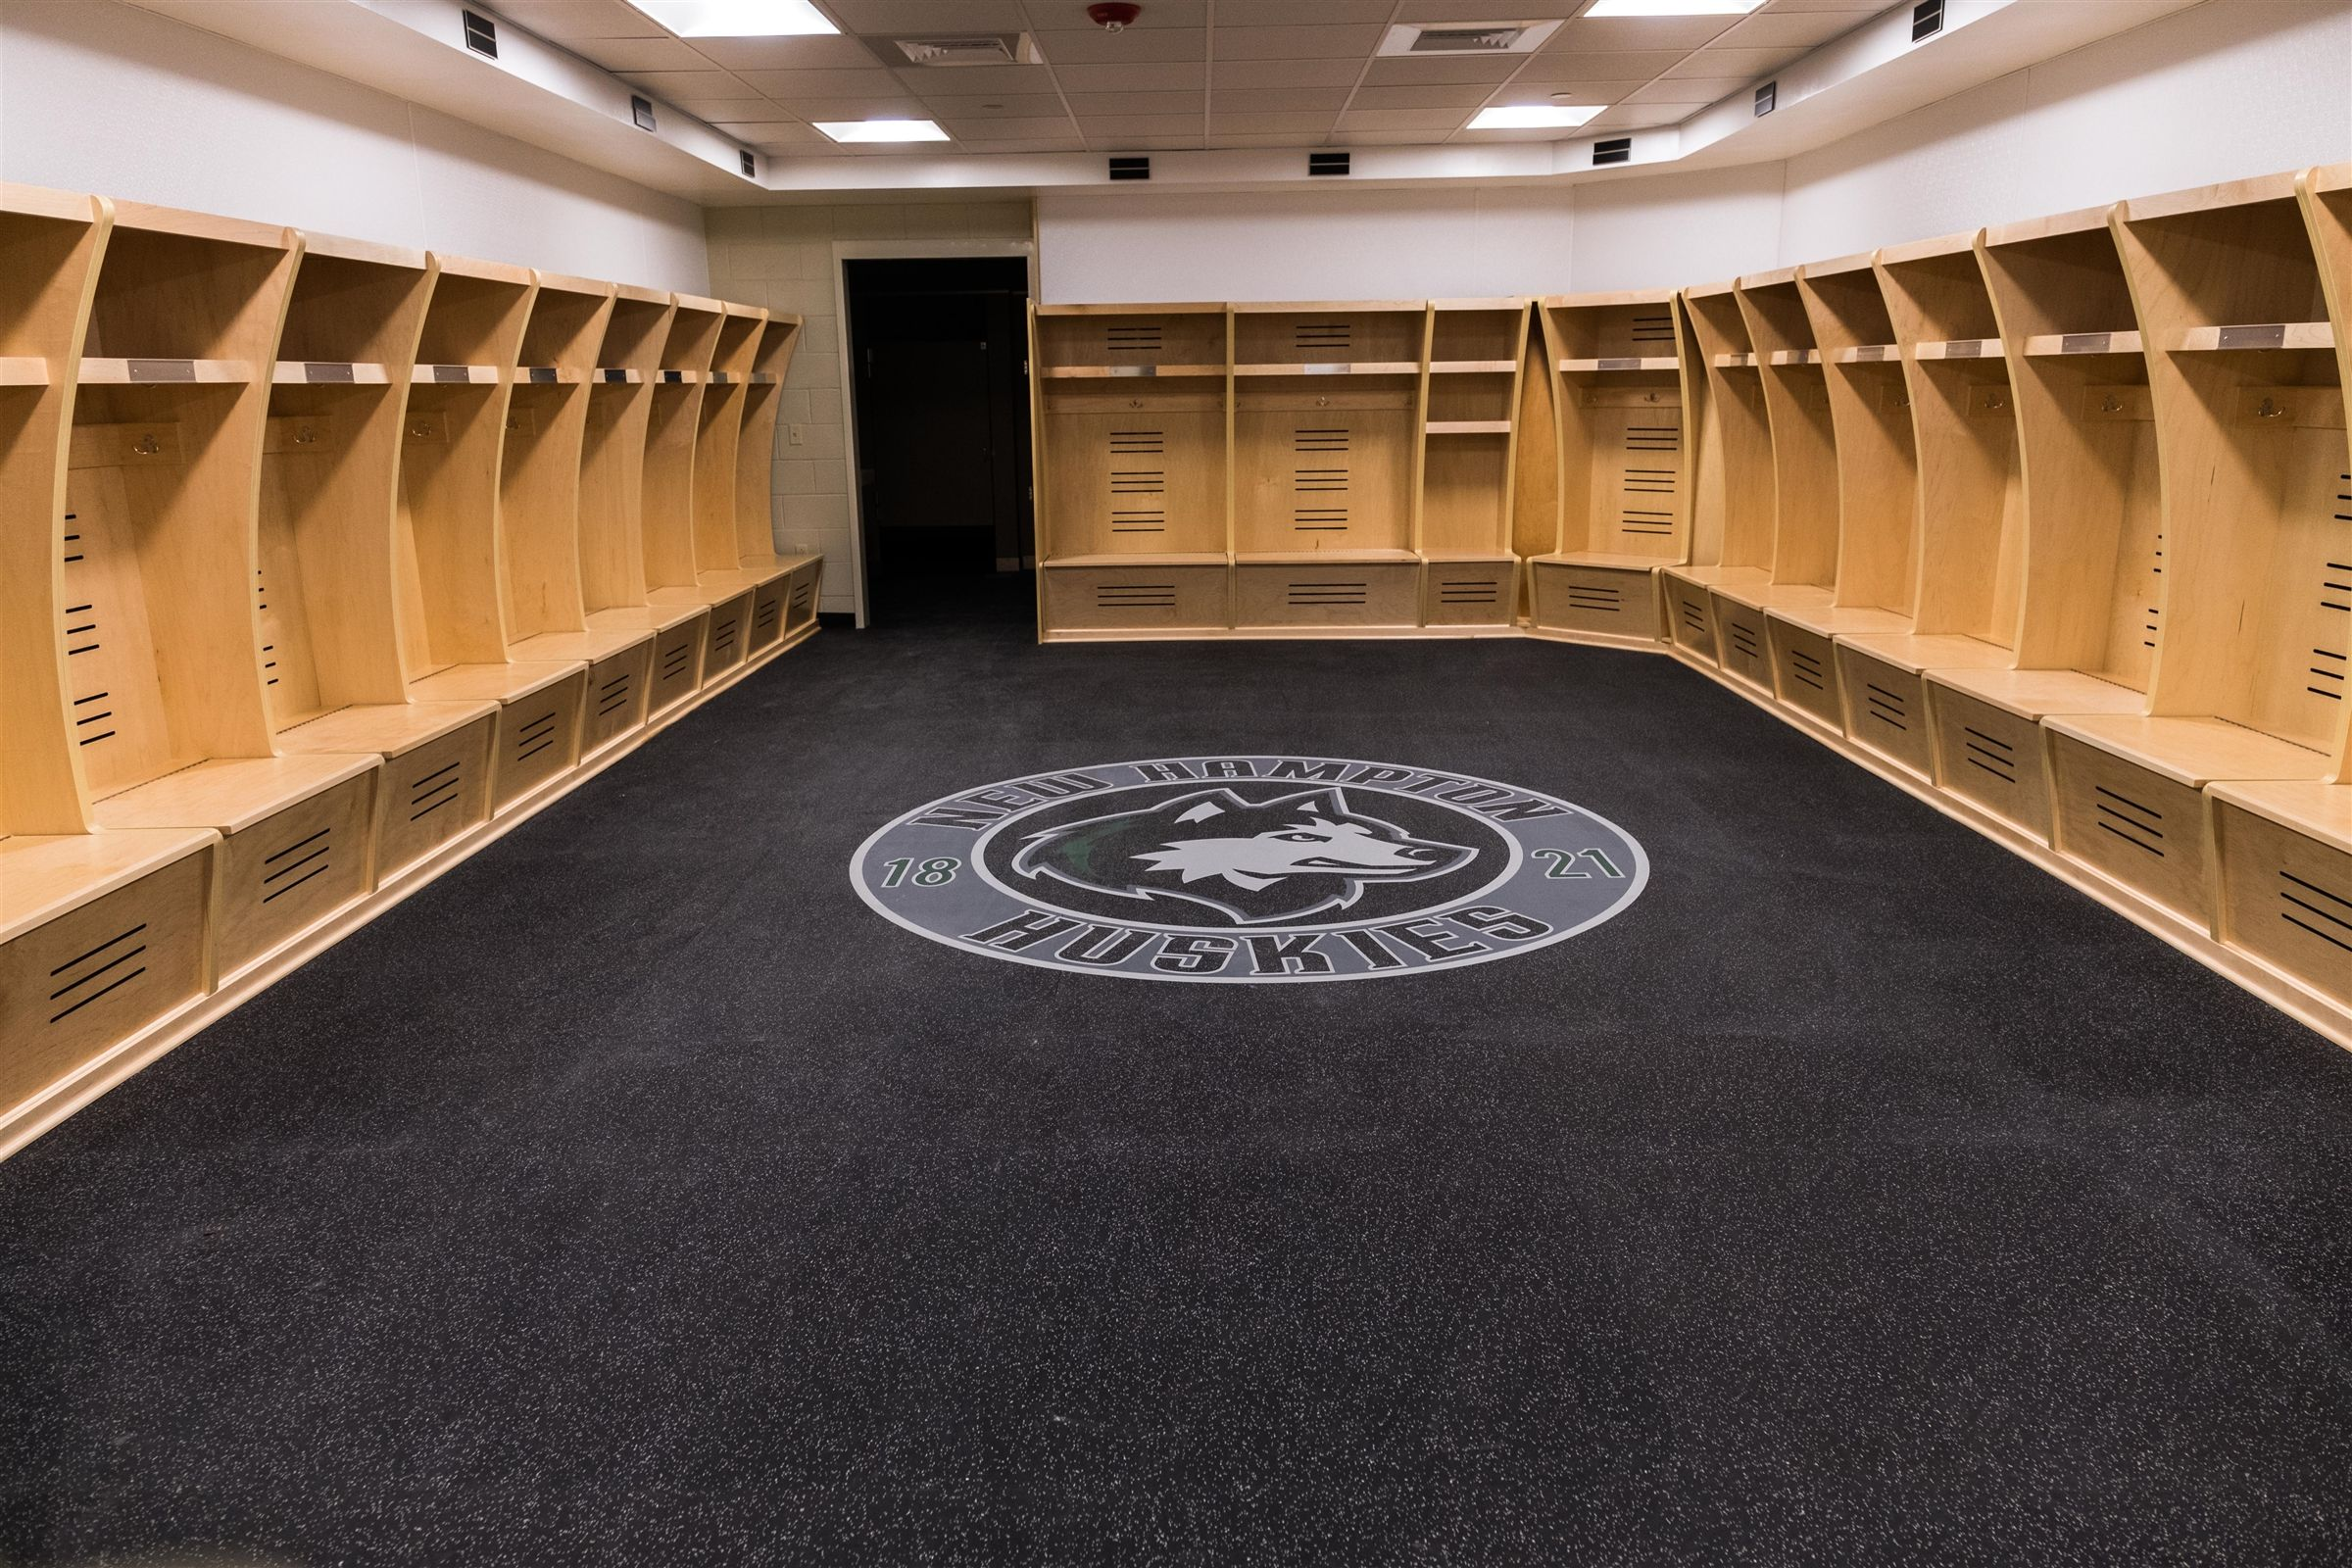 New Hampton School's state-of-the-art ice rink, Jacobson Arena complete with professional style lockerooms